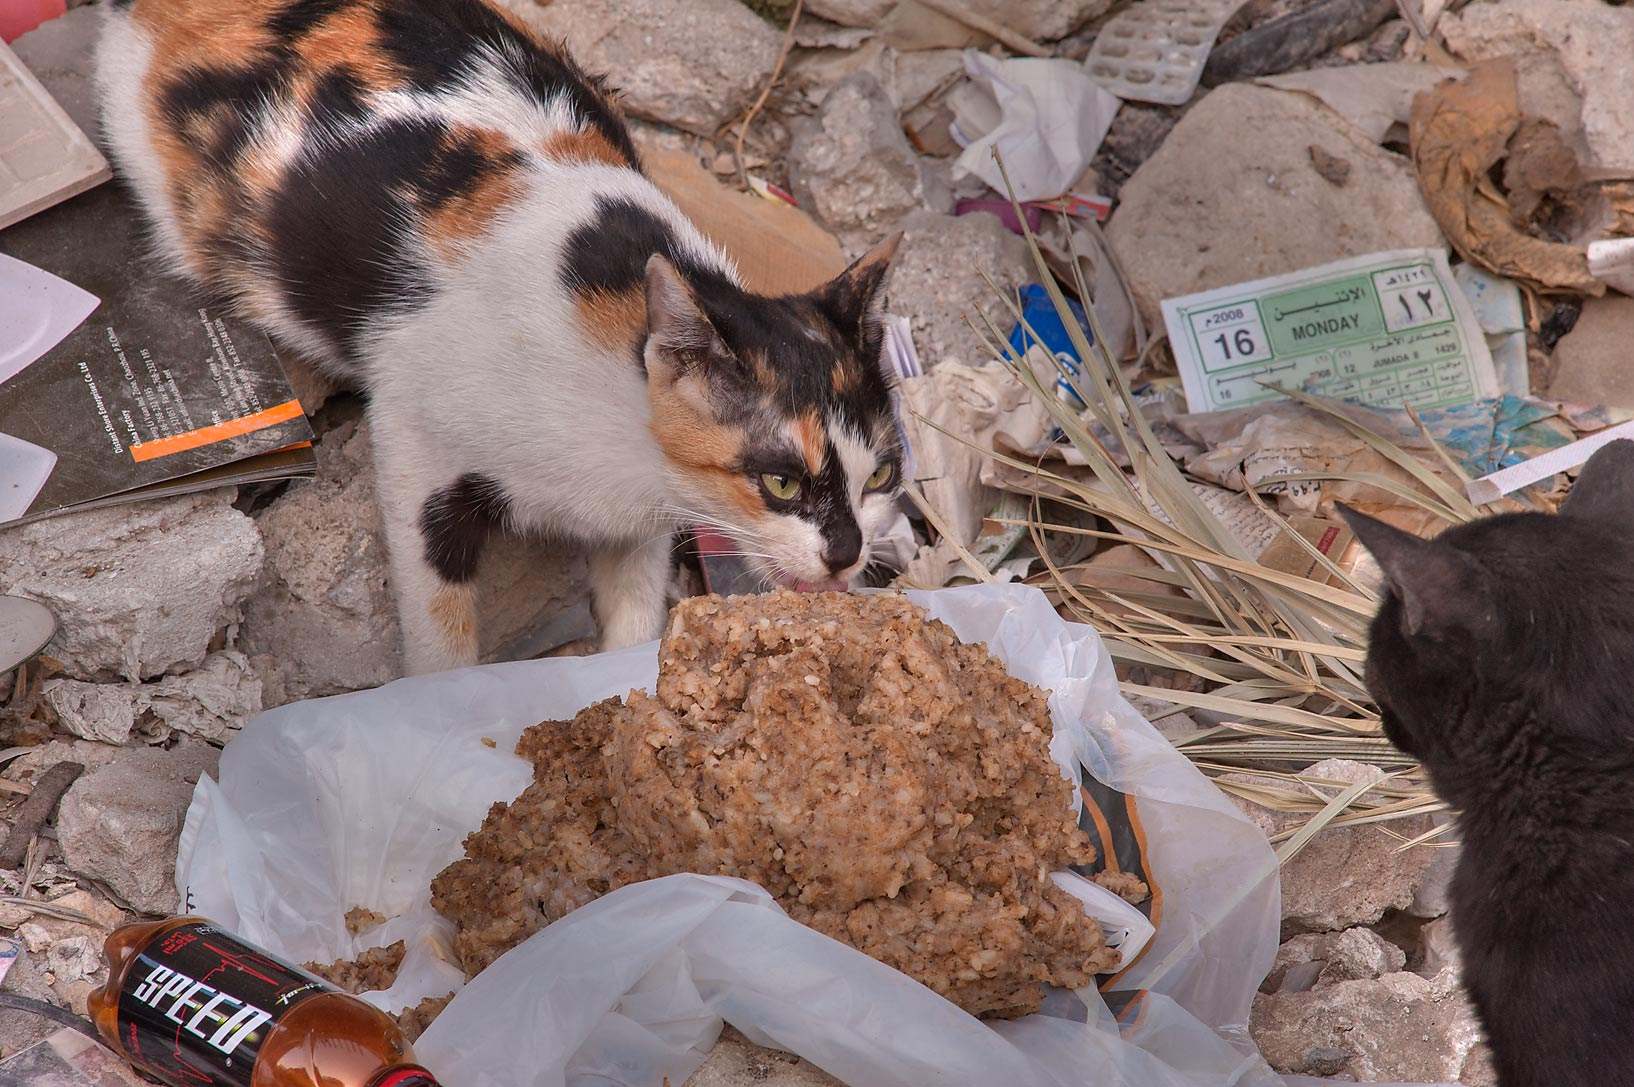 Calico cat eating buckwheat cereal on Umm Wishad St. in Musheirib area. Doha, Qatar